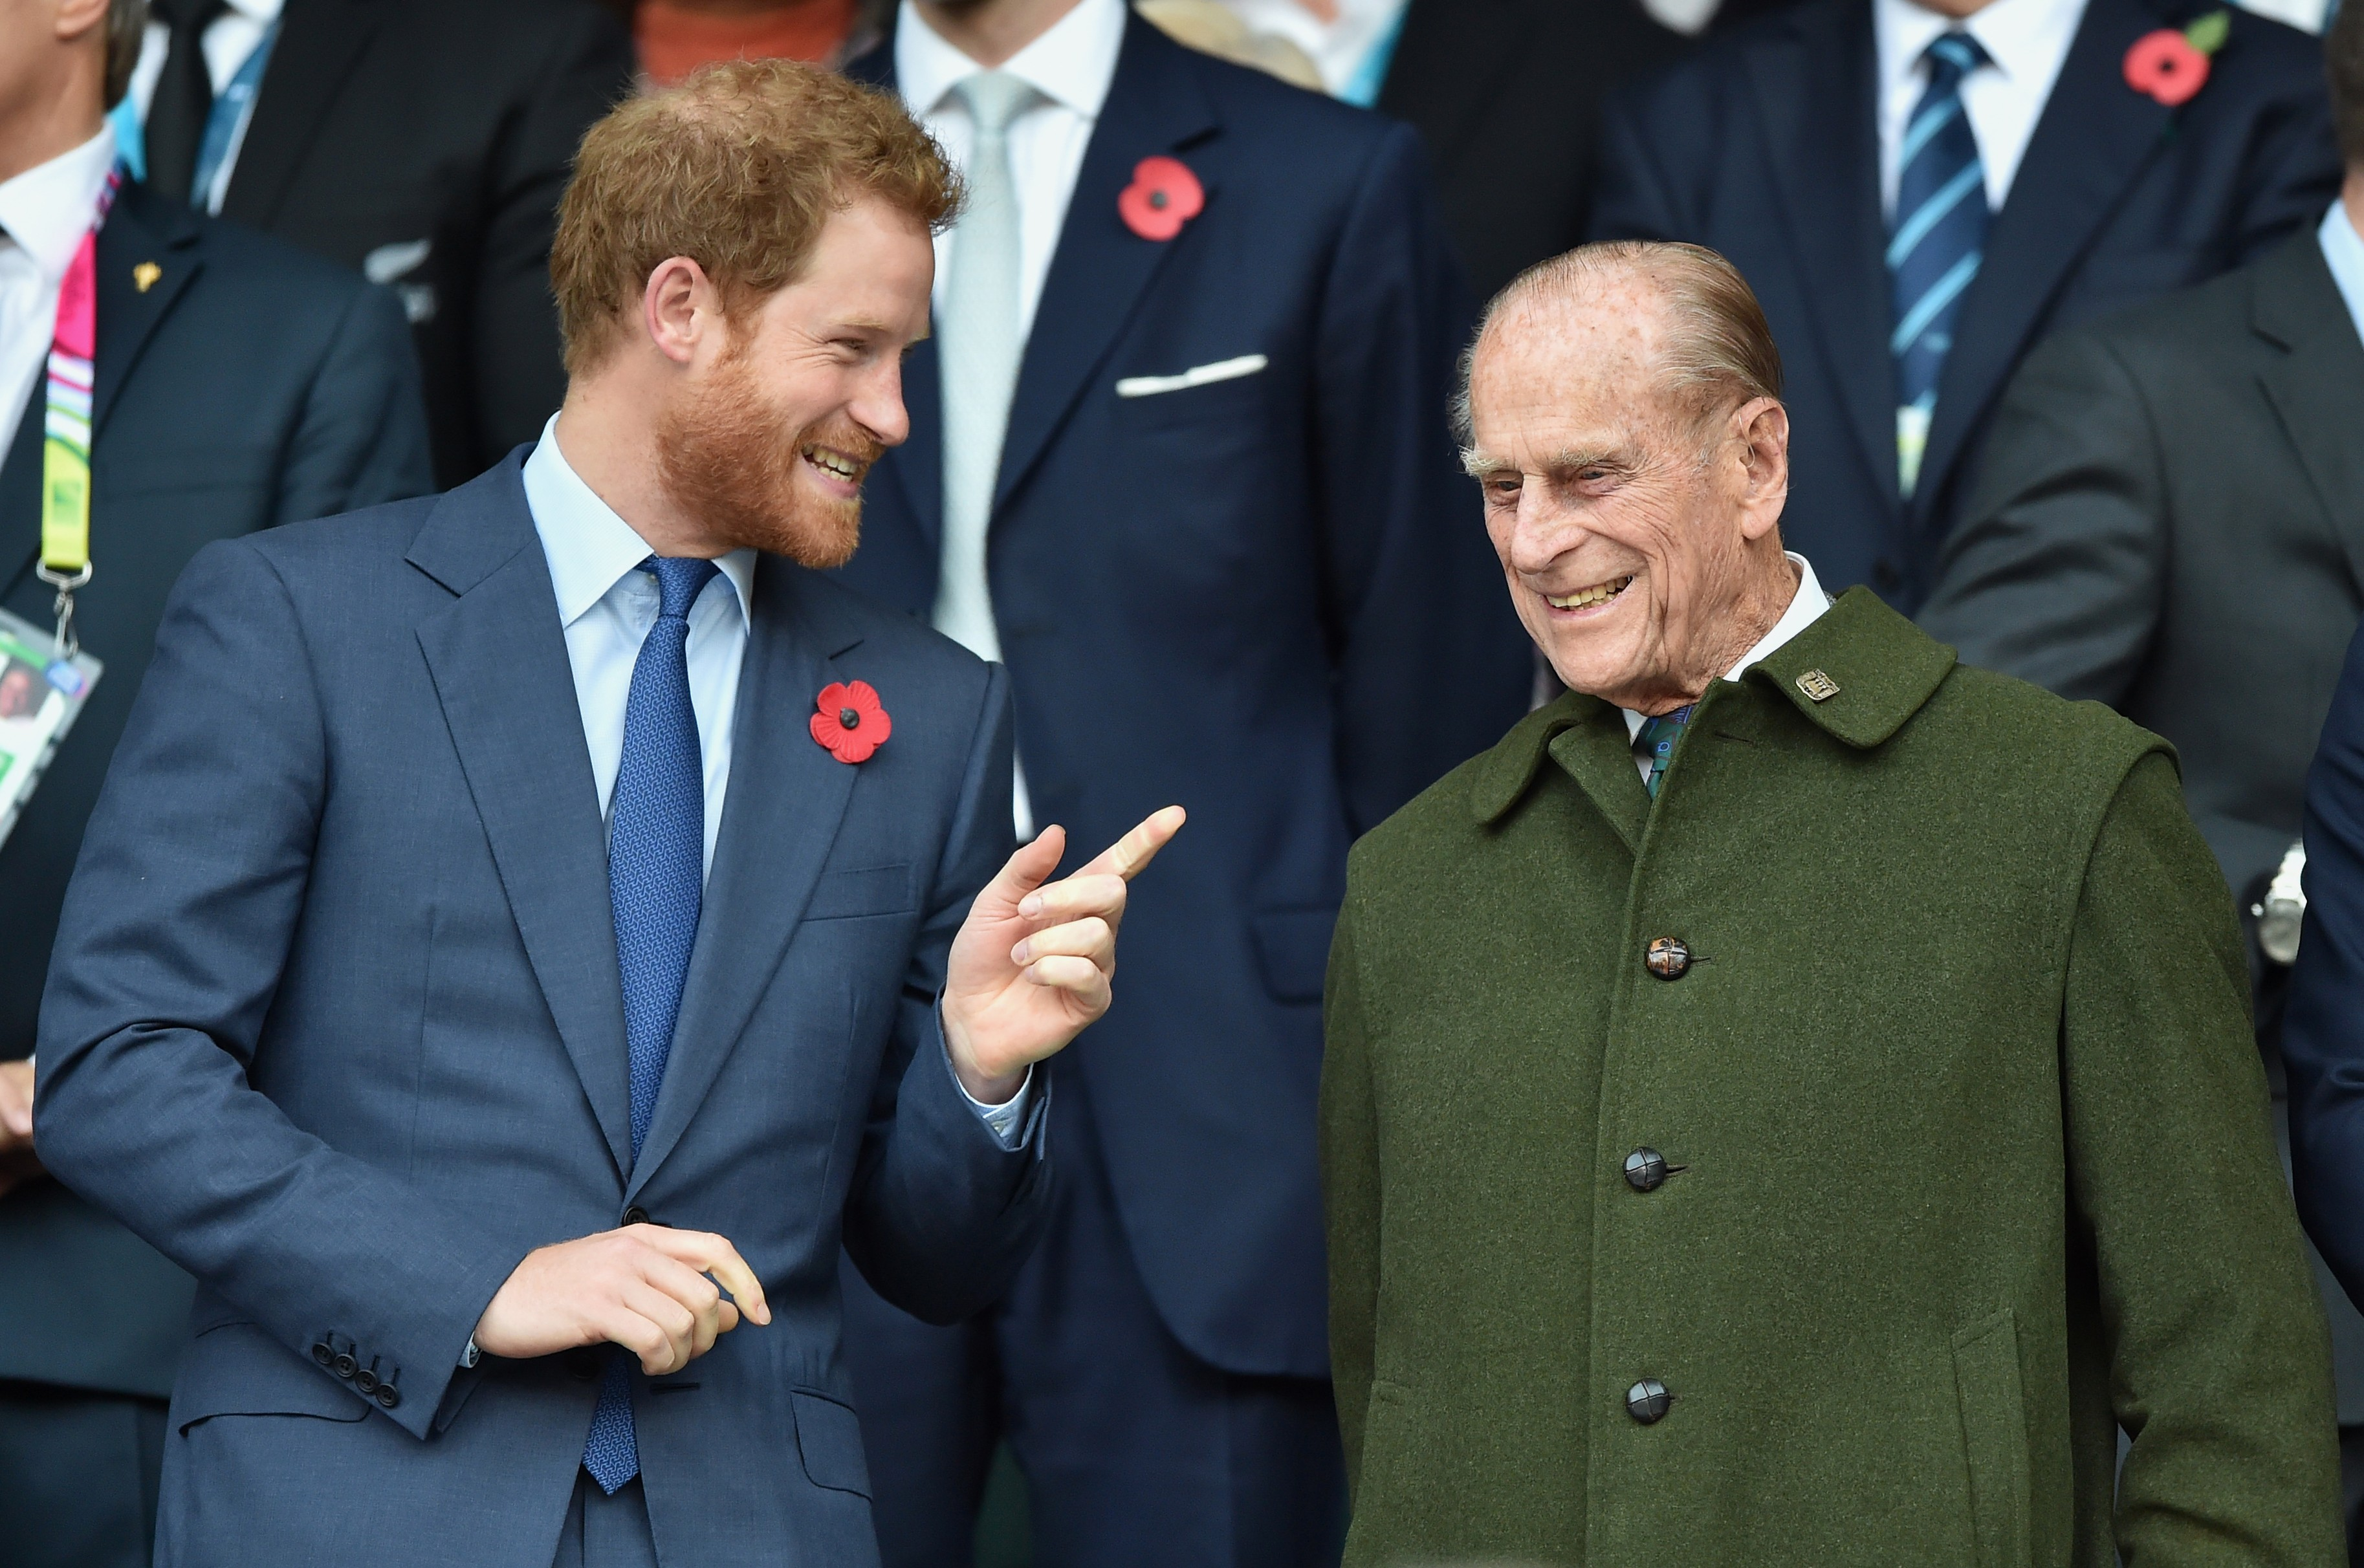 Prince Harry with his grandfather Prince Elizabeth 2nd husband Prince Philip at the 2015 Rugby World Cup Final between New Zealand and Australia (Photo: Getty Images)